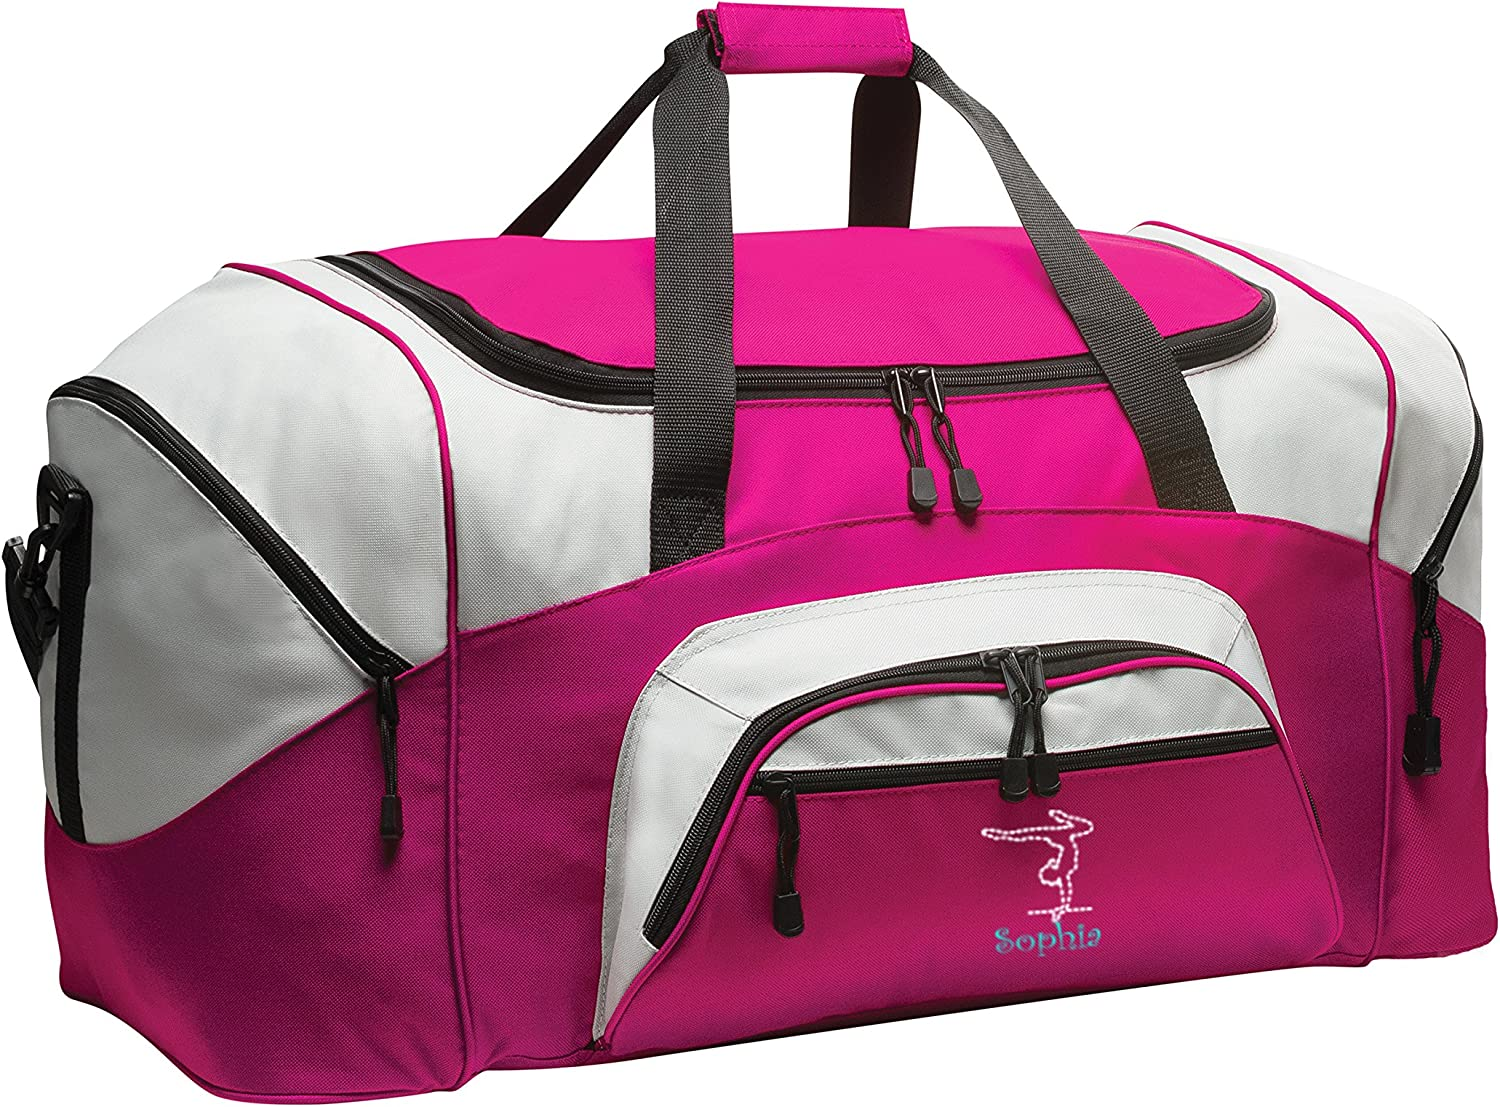 Personalized Gymnastics Gym Duffel Bag with Custom Text Large Sports Bag with Customizable Embroidered Monogram Design Tropical Pink Grey